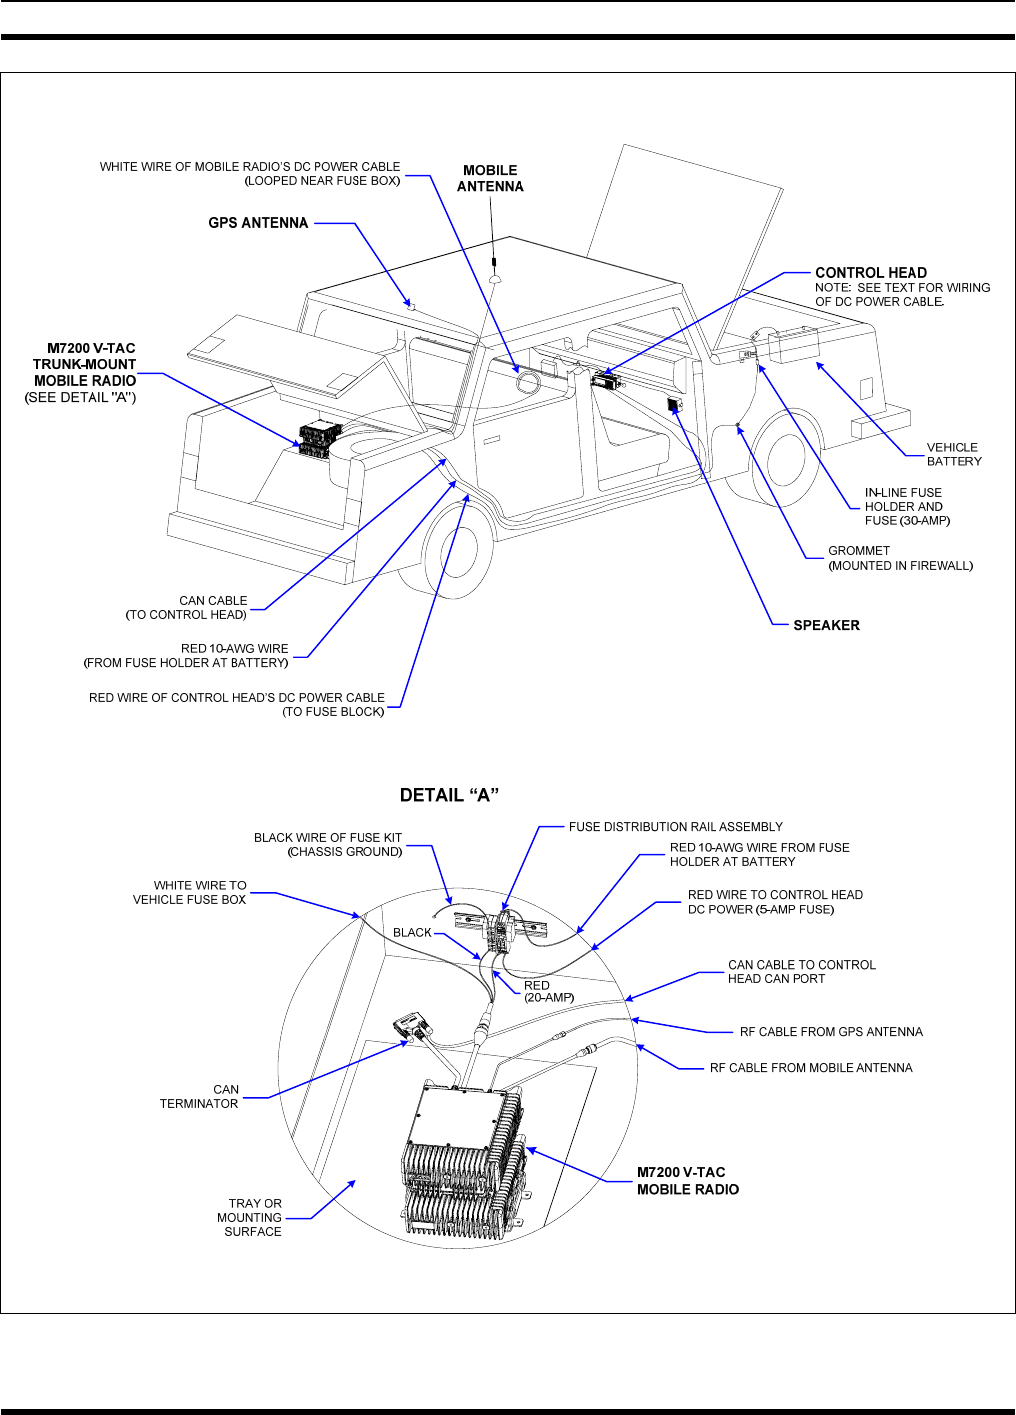 Harris M7200vtac M7200 V Tac 700 800 Mhz Mobile Radio User Manual Know If It Will Be Readable But Here Is A Wiring Diagram Of Fuse C Mm 011074 001